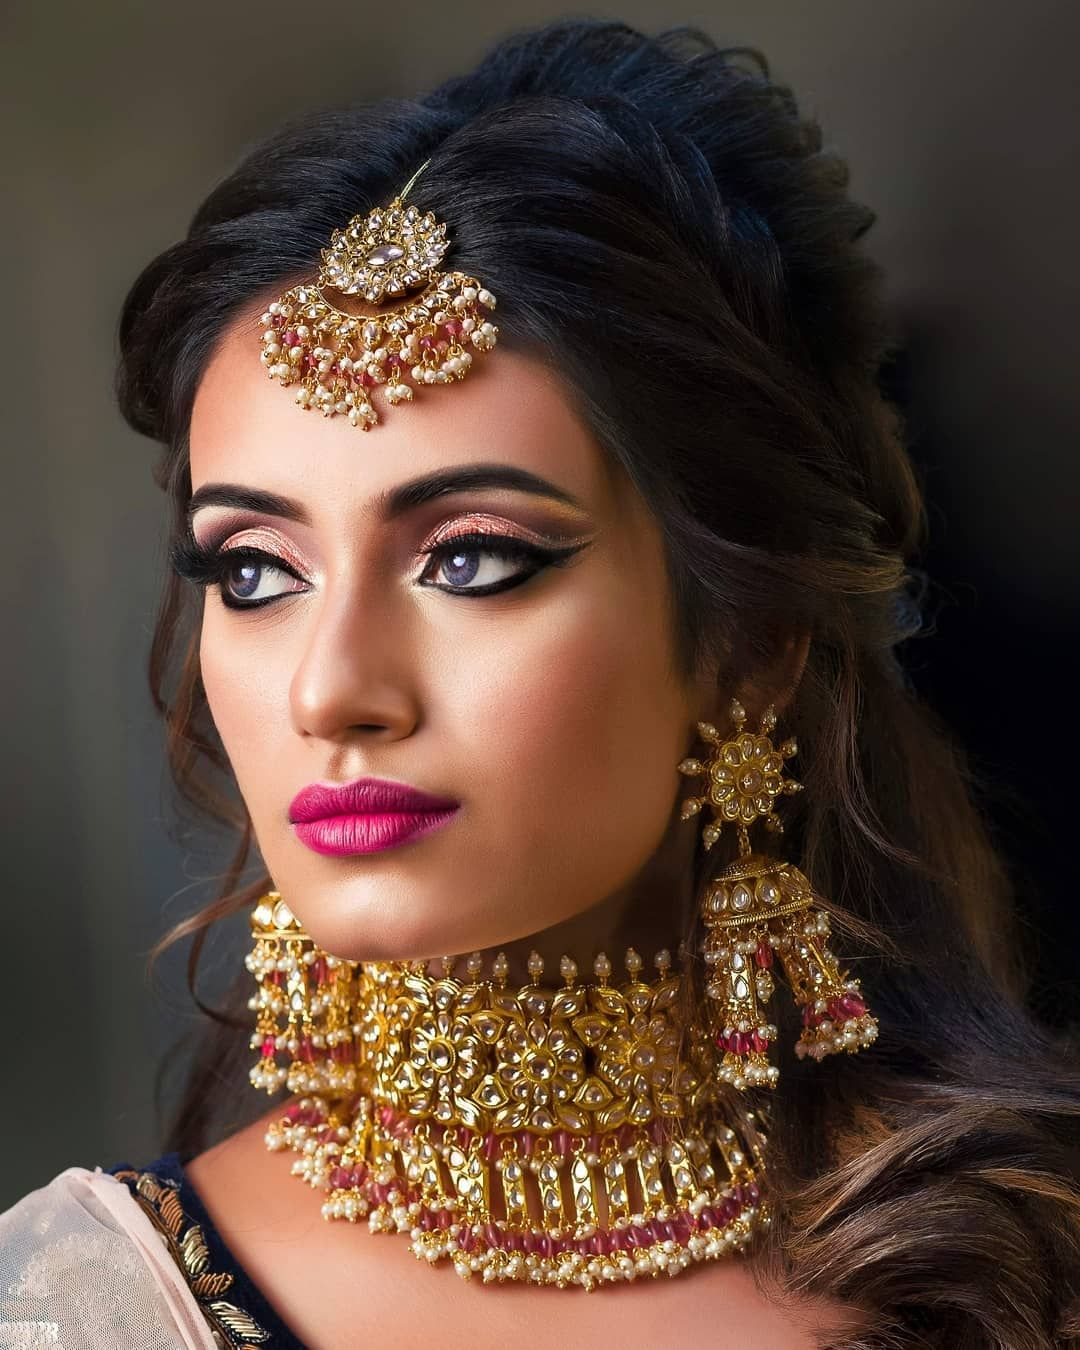 """Richa Dave on Instagram """"Another Glimpse of Bride Model"""